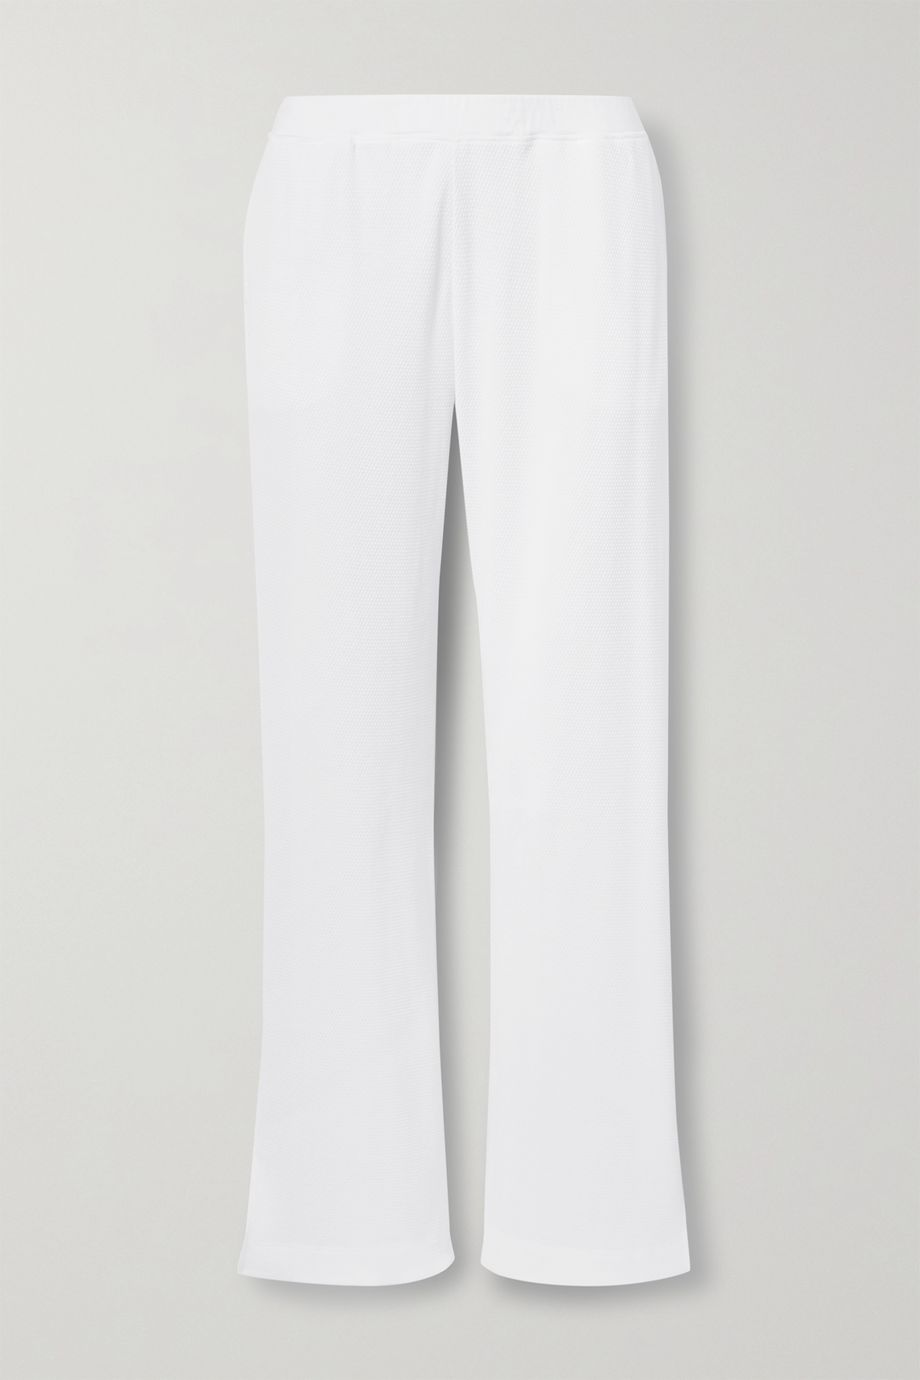 Skin Lenai textured-Pima cotton pajama pants